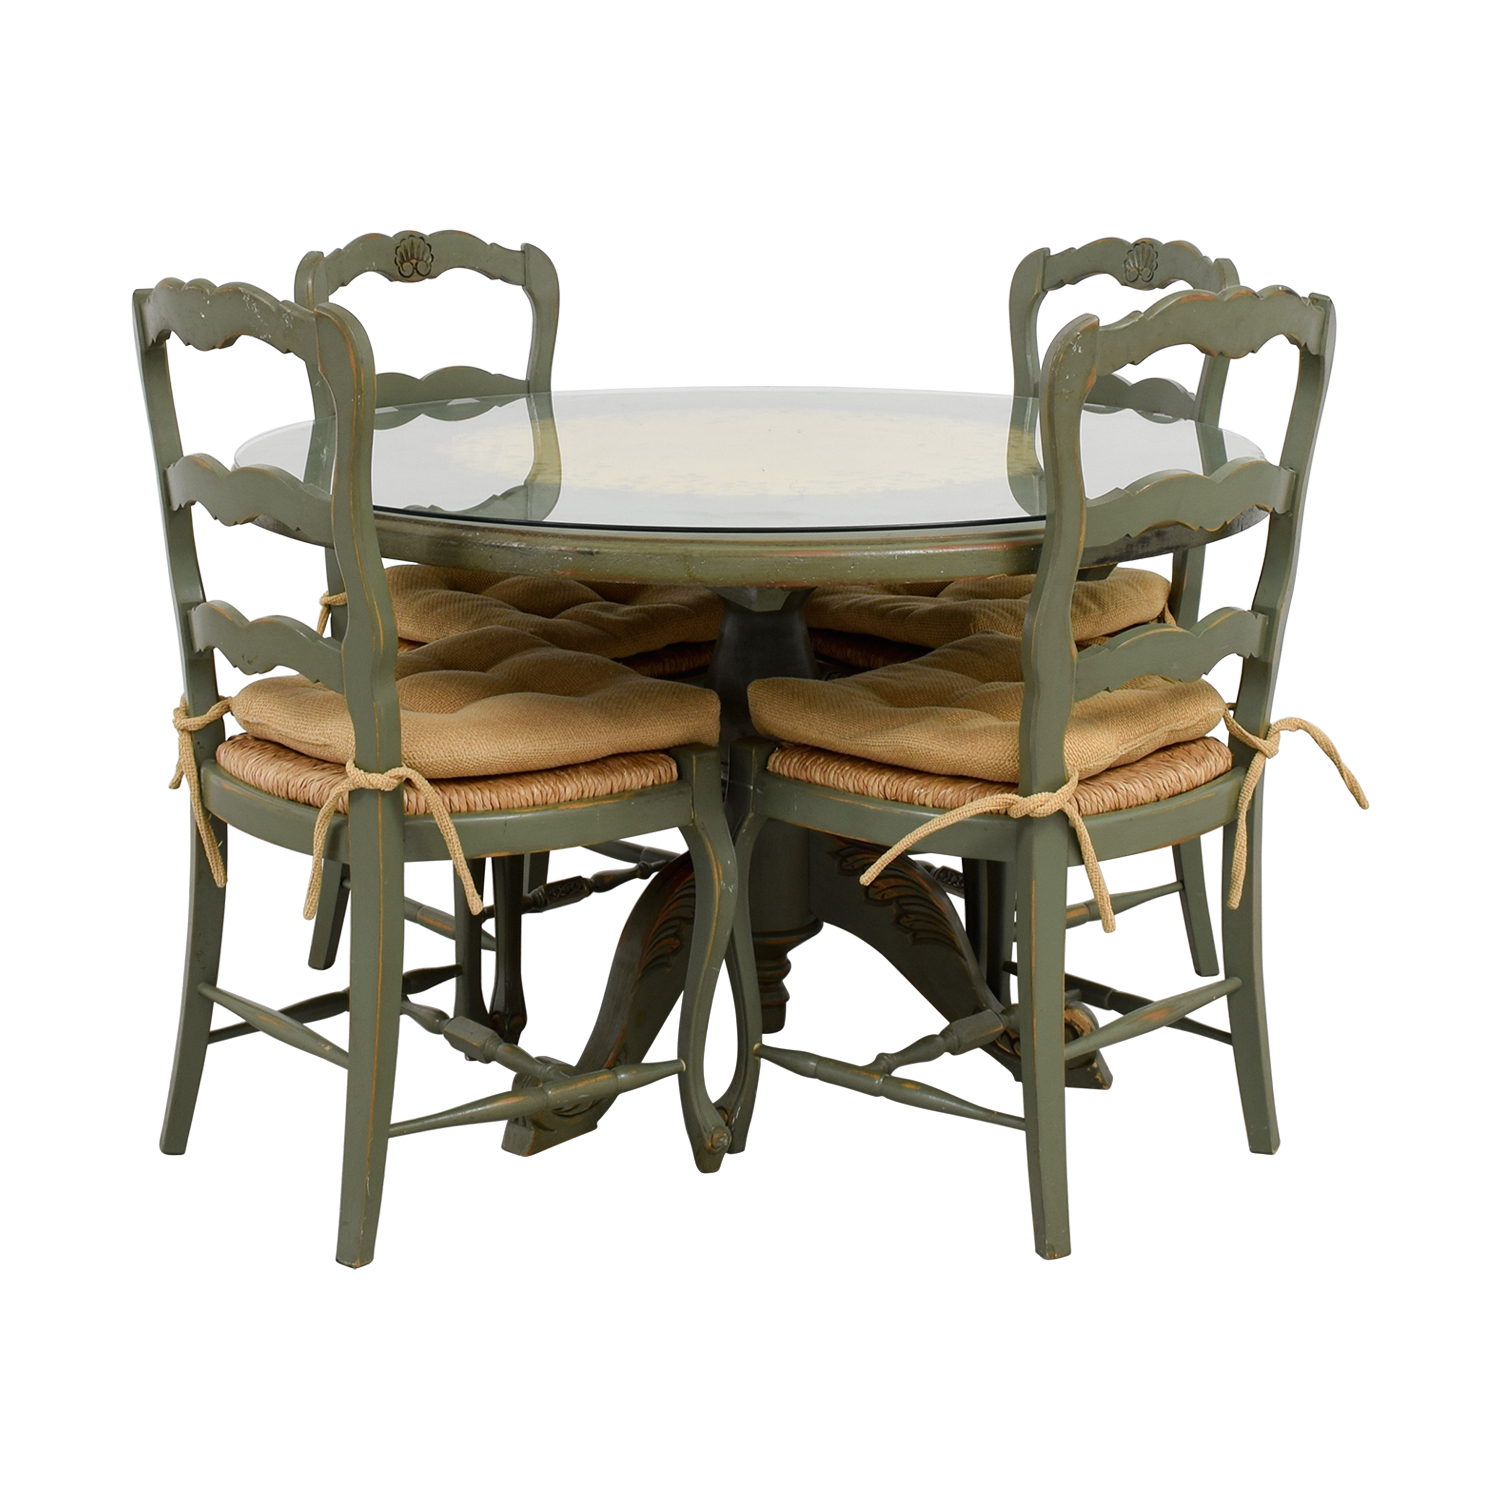 Country Style Kitchen Tables Chairs. country kitchen table